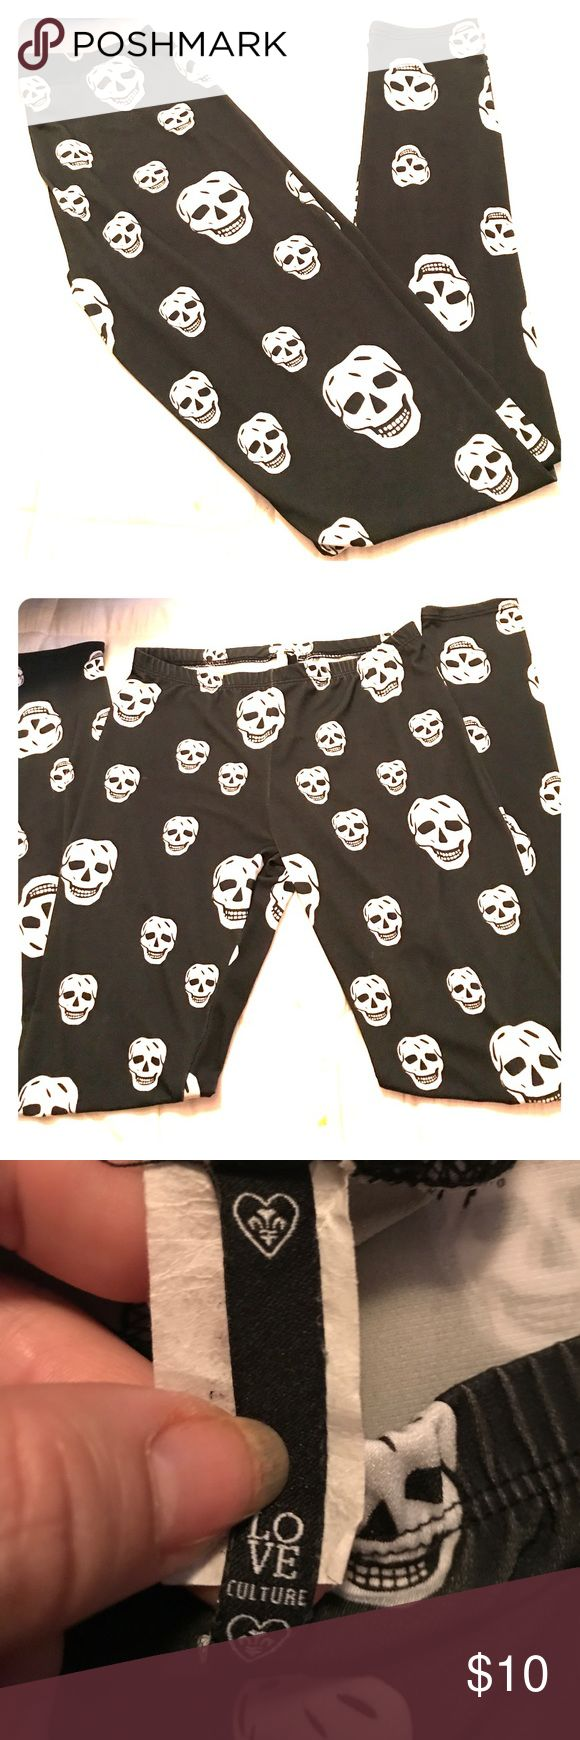 GIRLS LEGGINGS BLACK AND WHITE SKULLS GIRLS LEGGINGS BLACK AND WHITE SKULLS SIZE SM Love Culture Bottoms Leggings